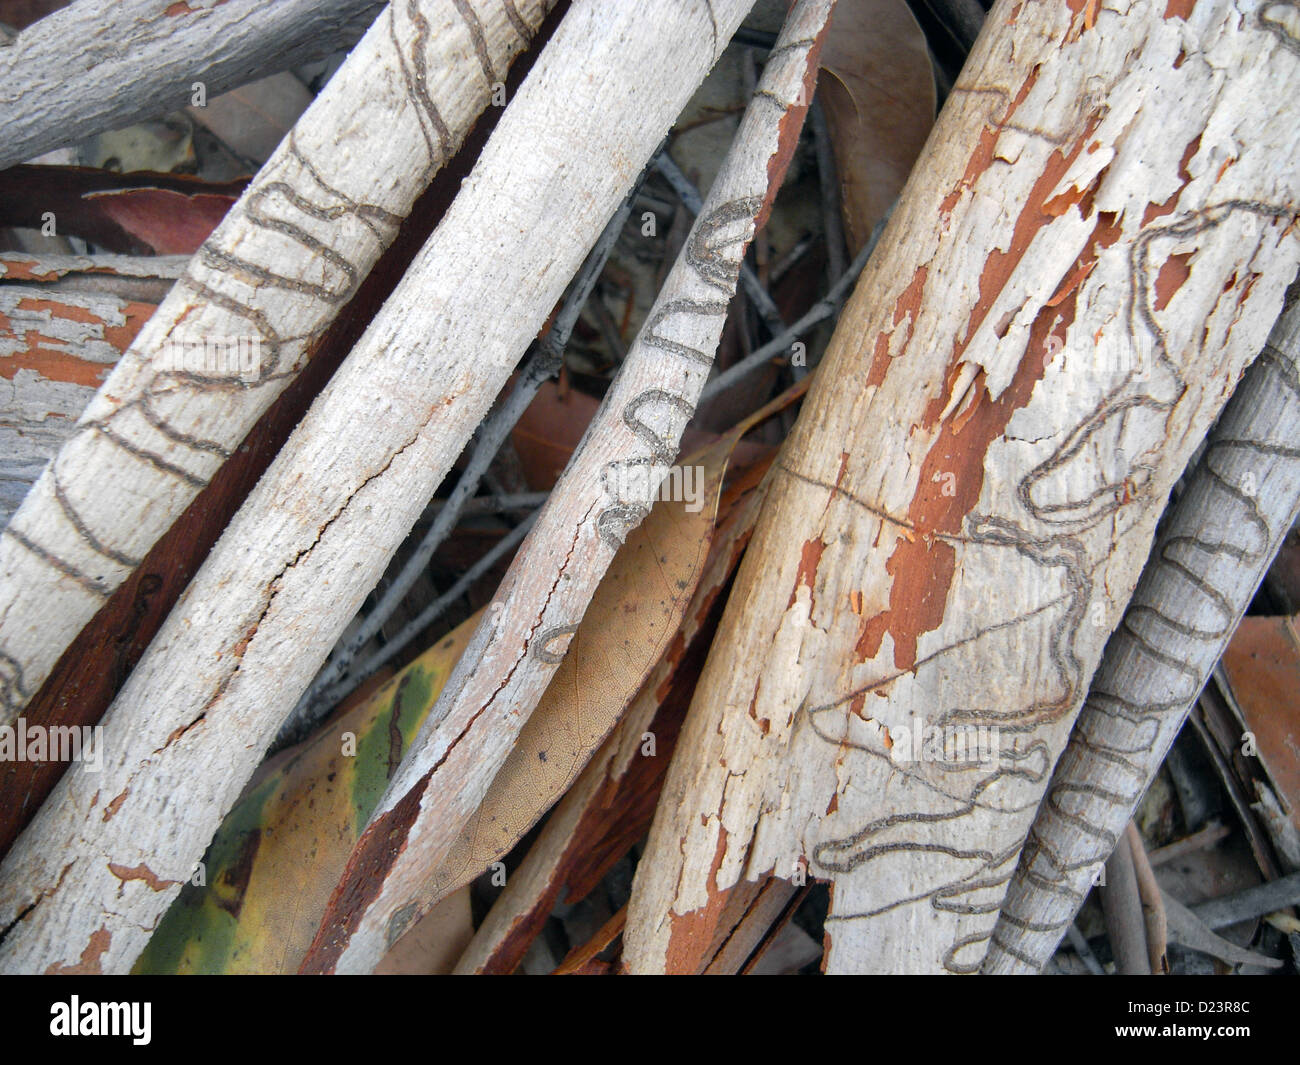 Shed bark of scribbly gum (Eucalyptus racemosa) amongst leaf litter, Moreton Island National Park, Brisbane, Australia - Stock Image